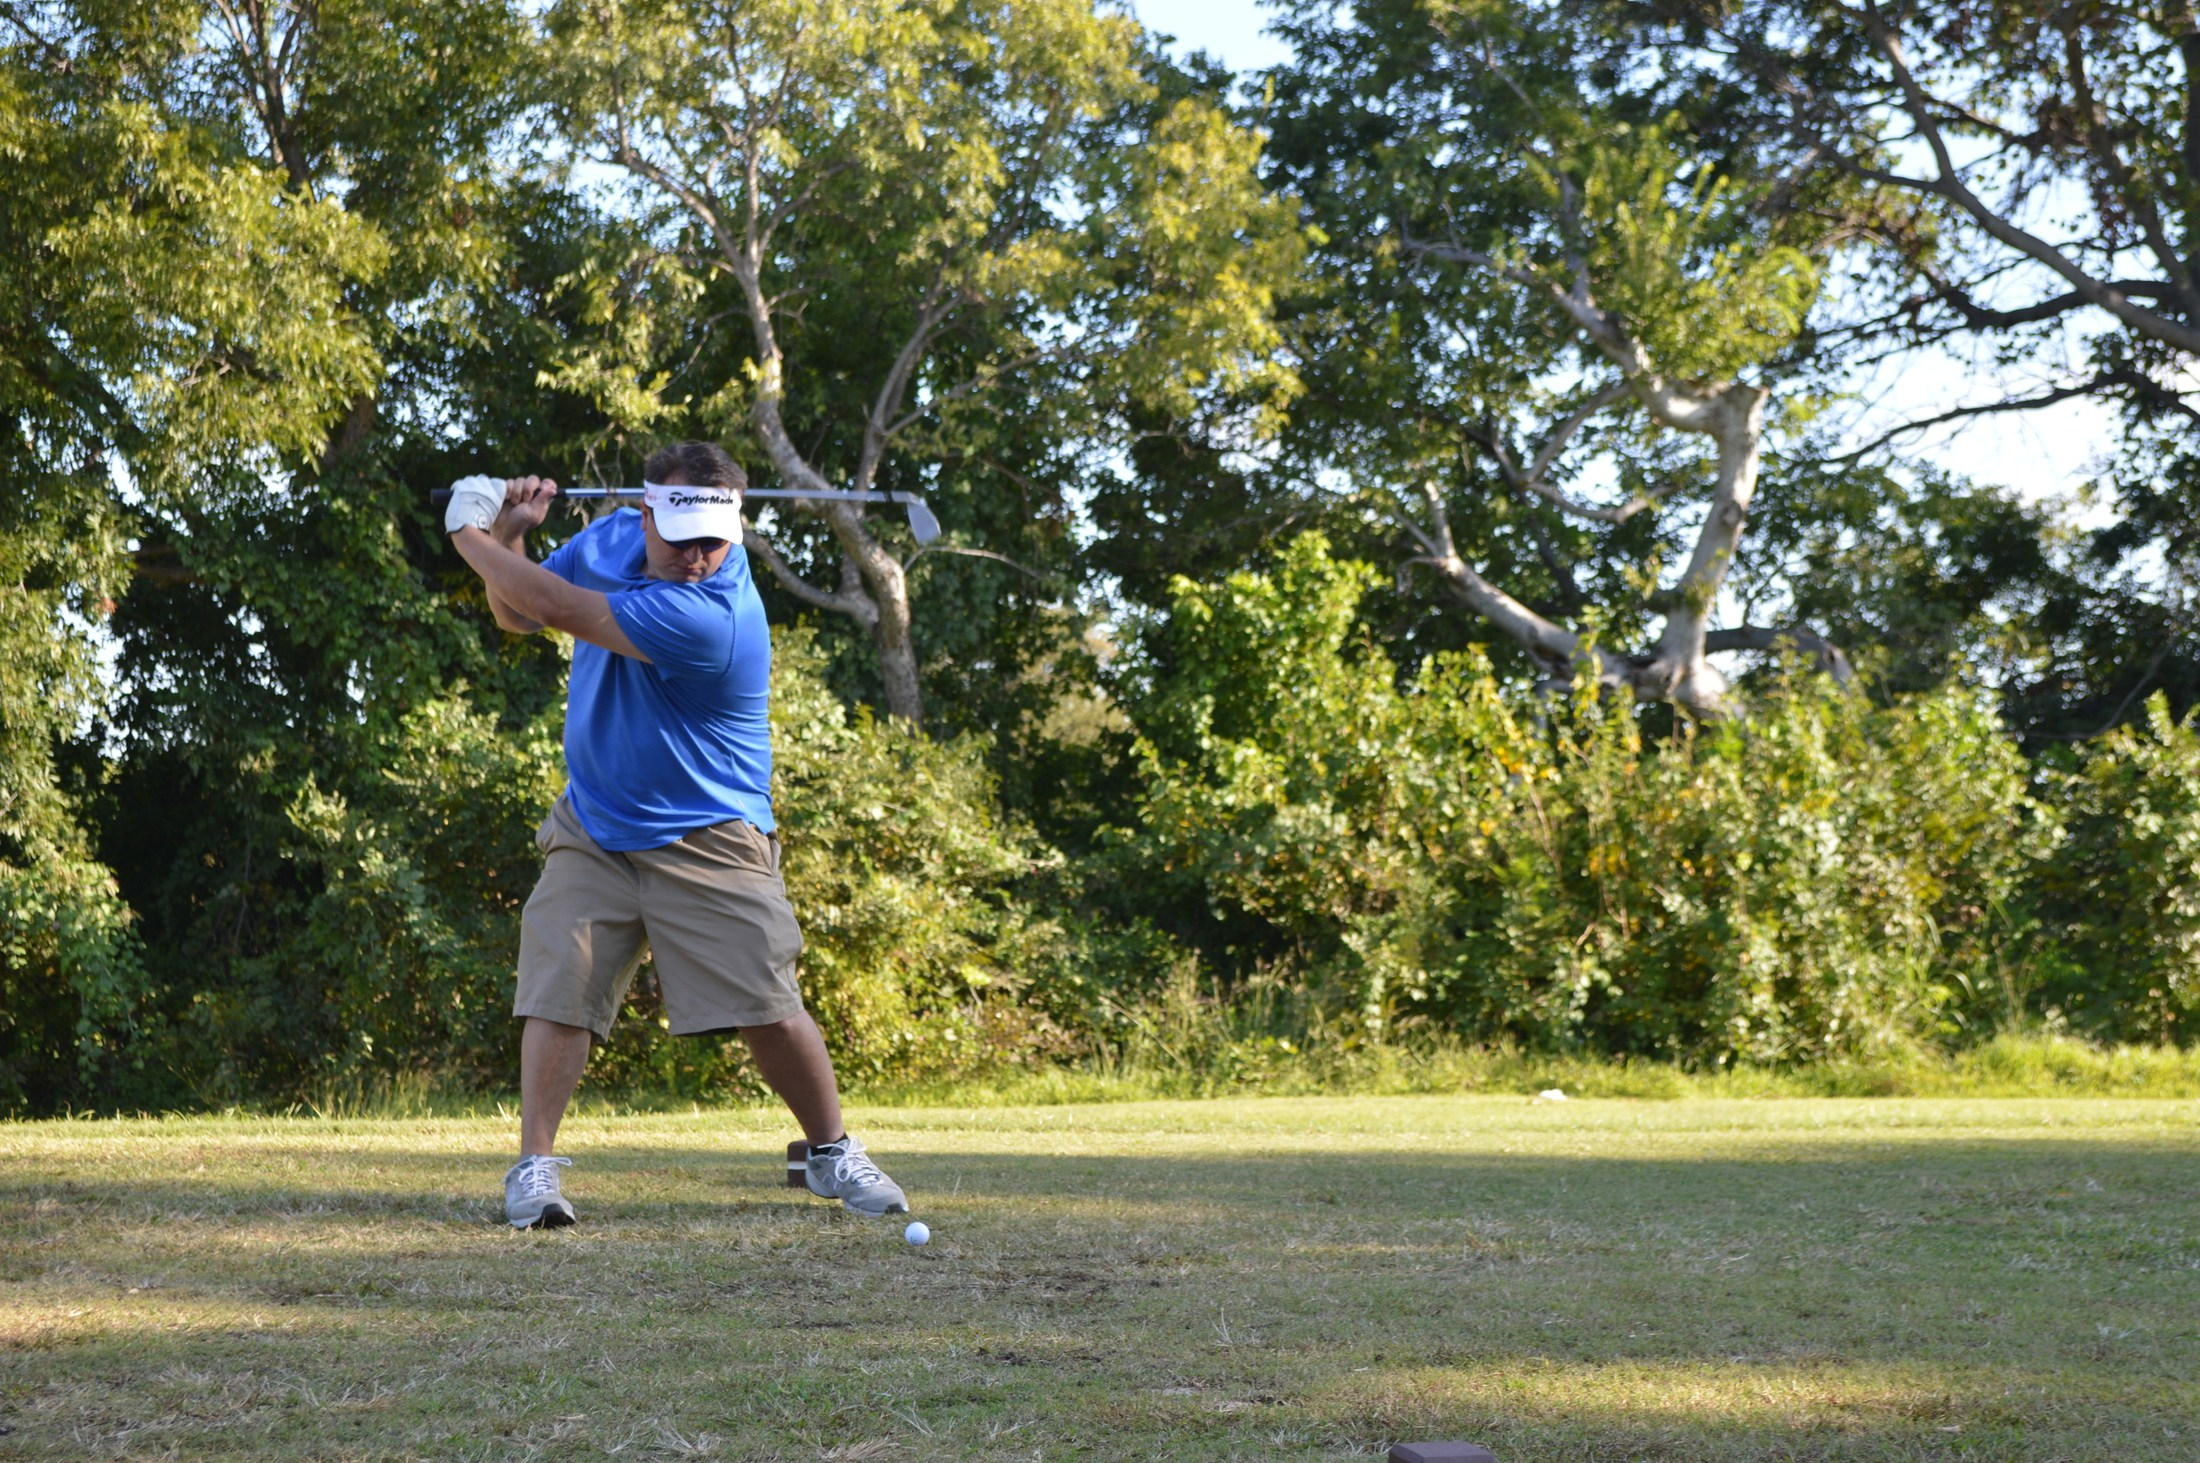 Golf Tournament: On the course, swinging clubs